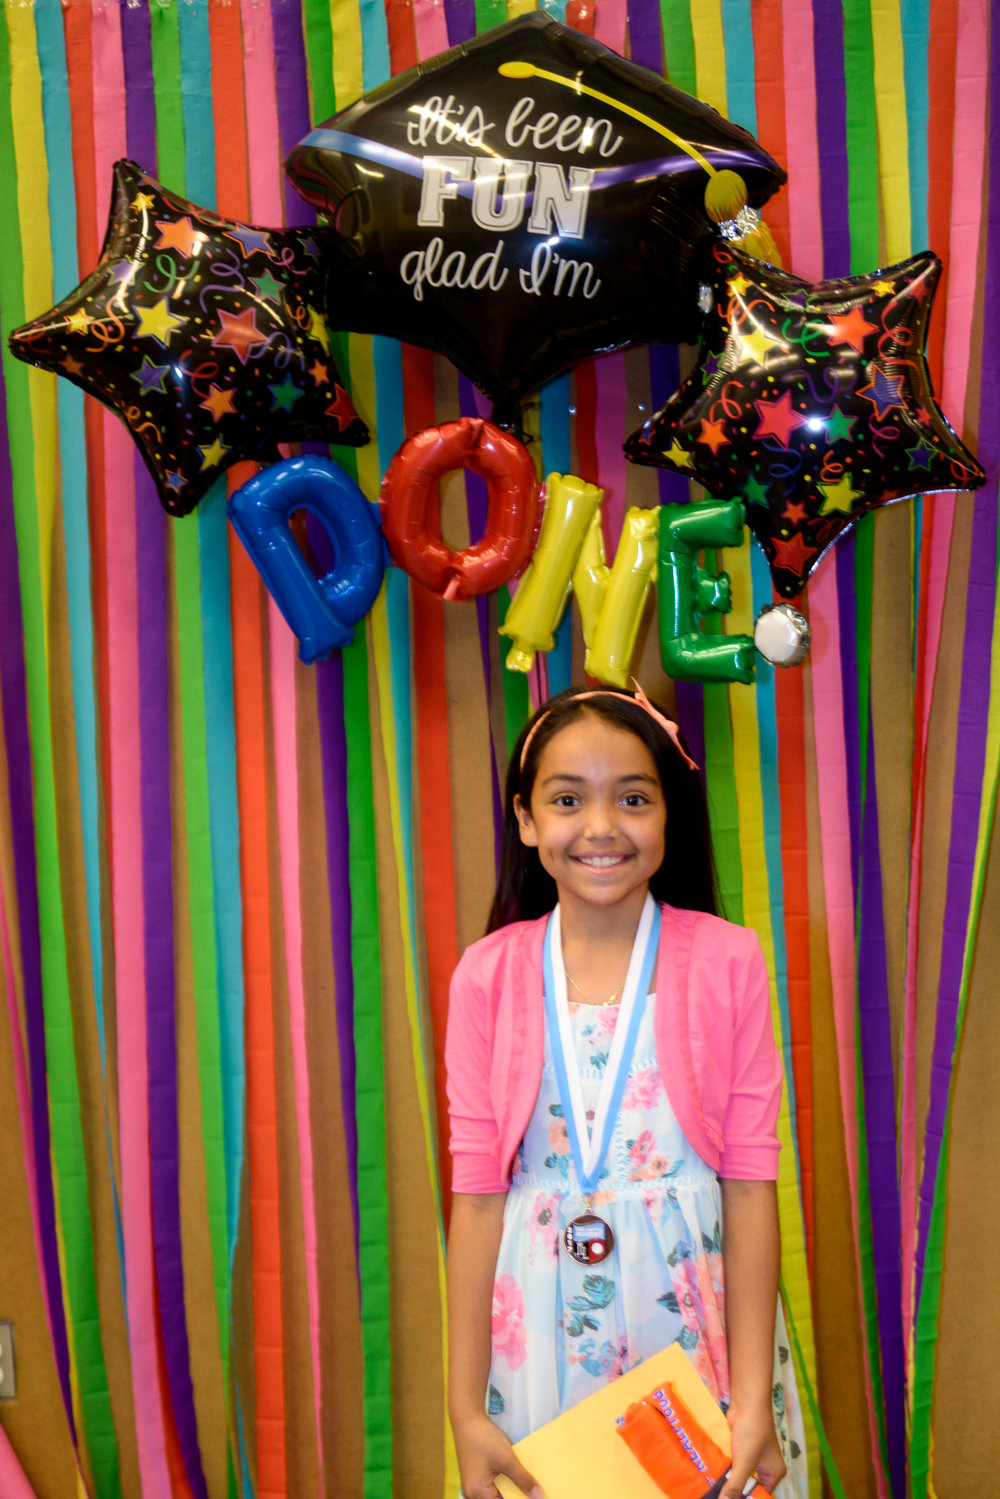 Click here to view 5th grade photos - passcode is :  graduates